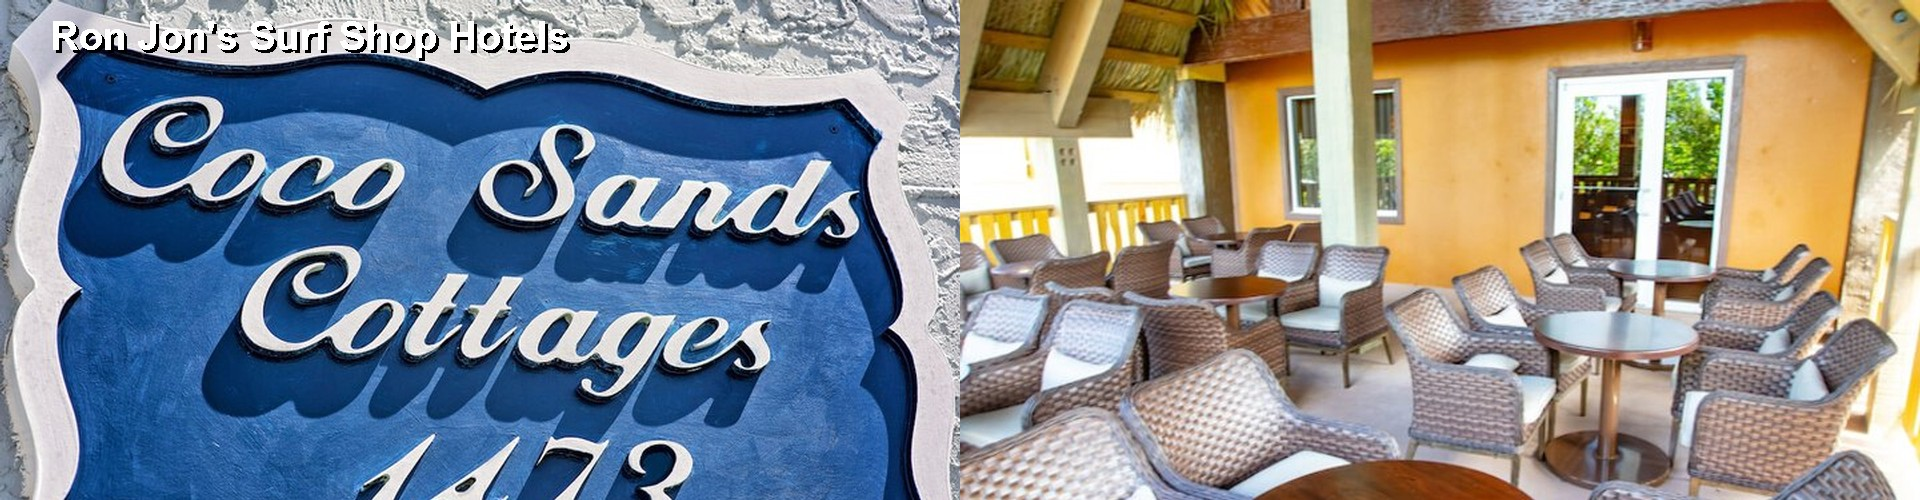 5 Best Hotels near Ron Jon's Surf Shop